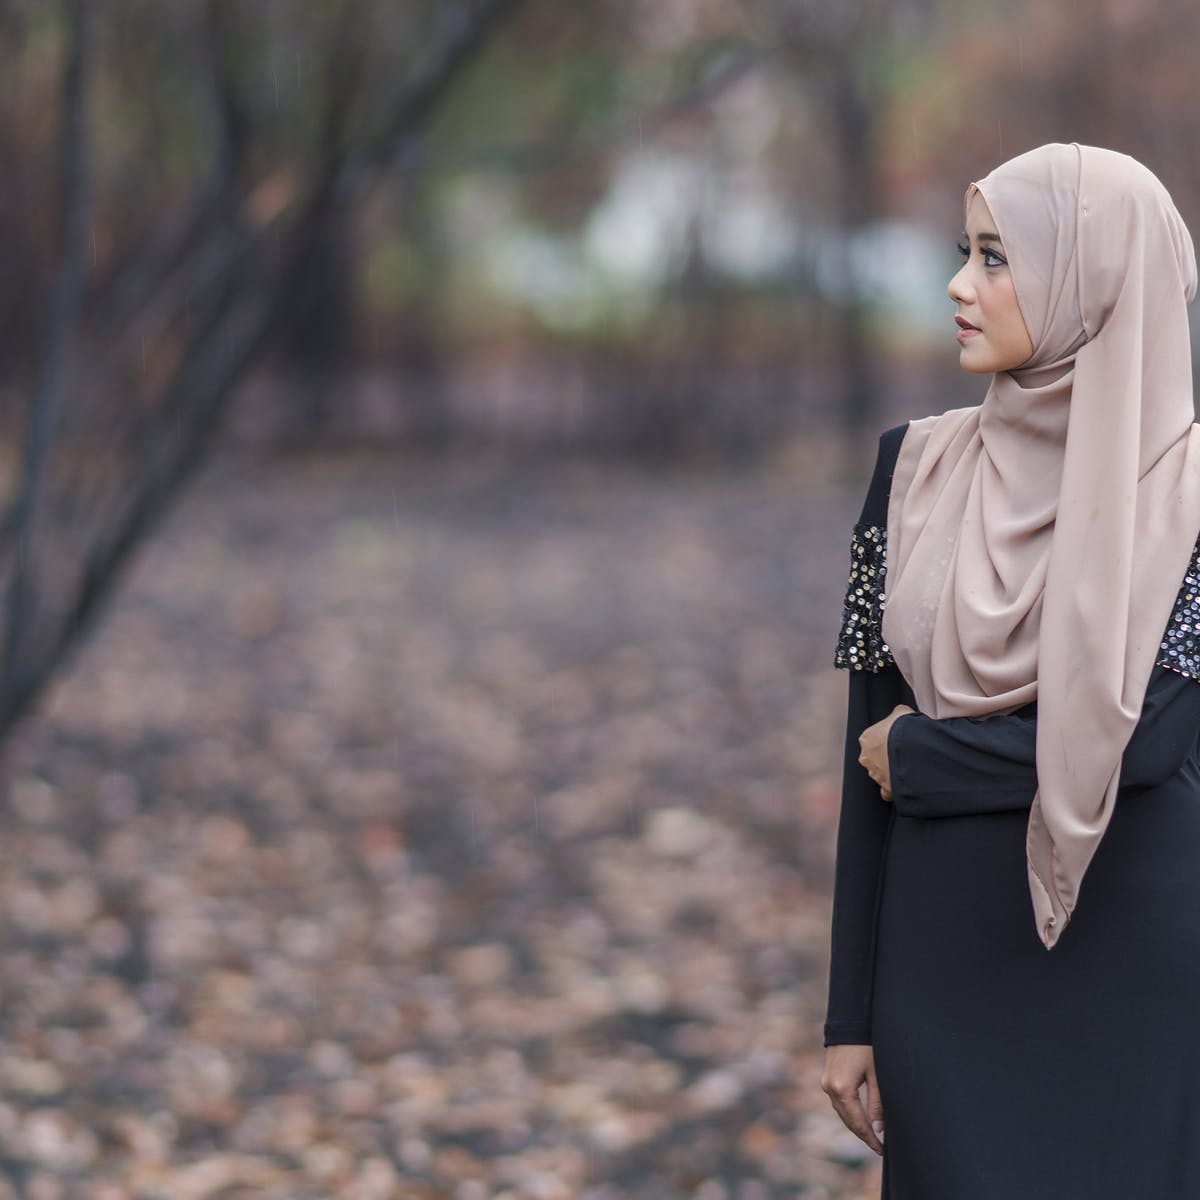 293d2a7978 How Muslim women break stereotypes by mixing faith and modesty with fashion